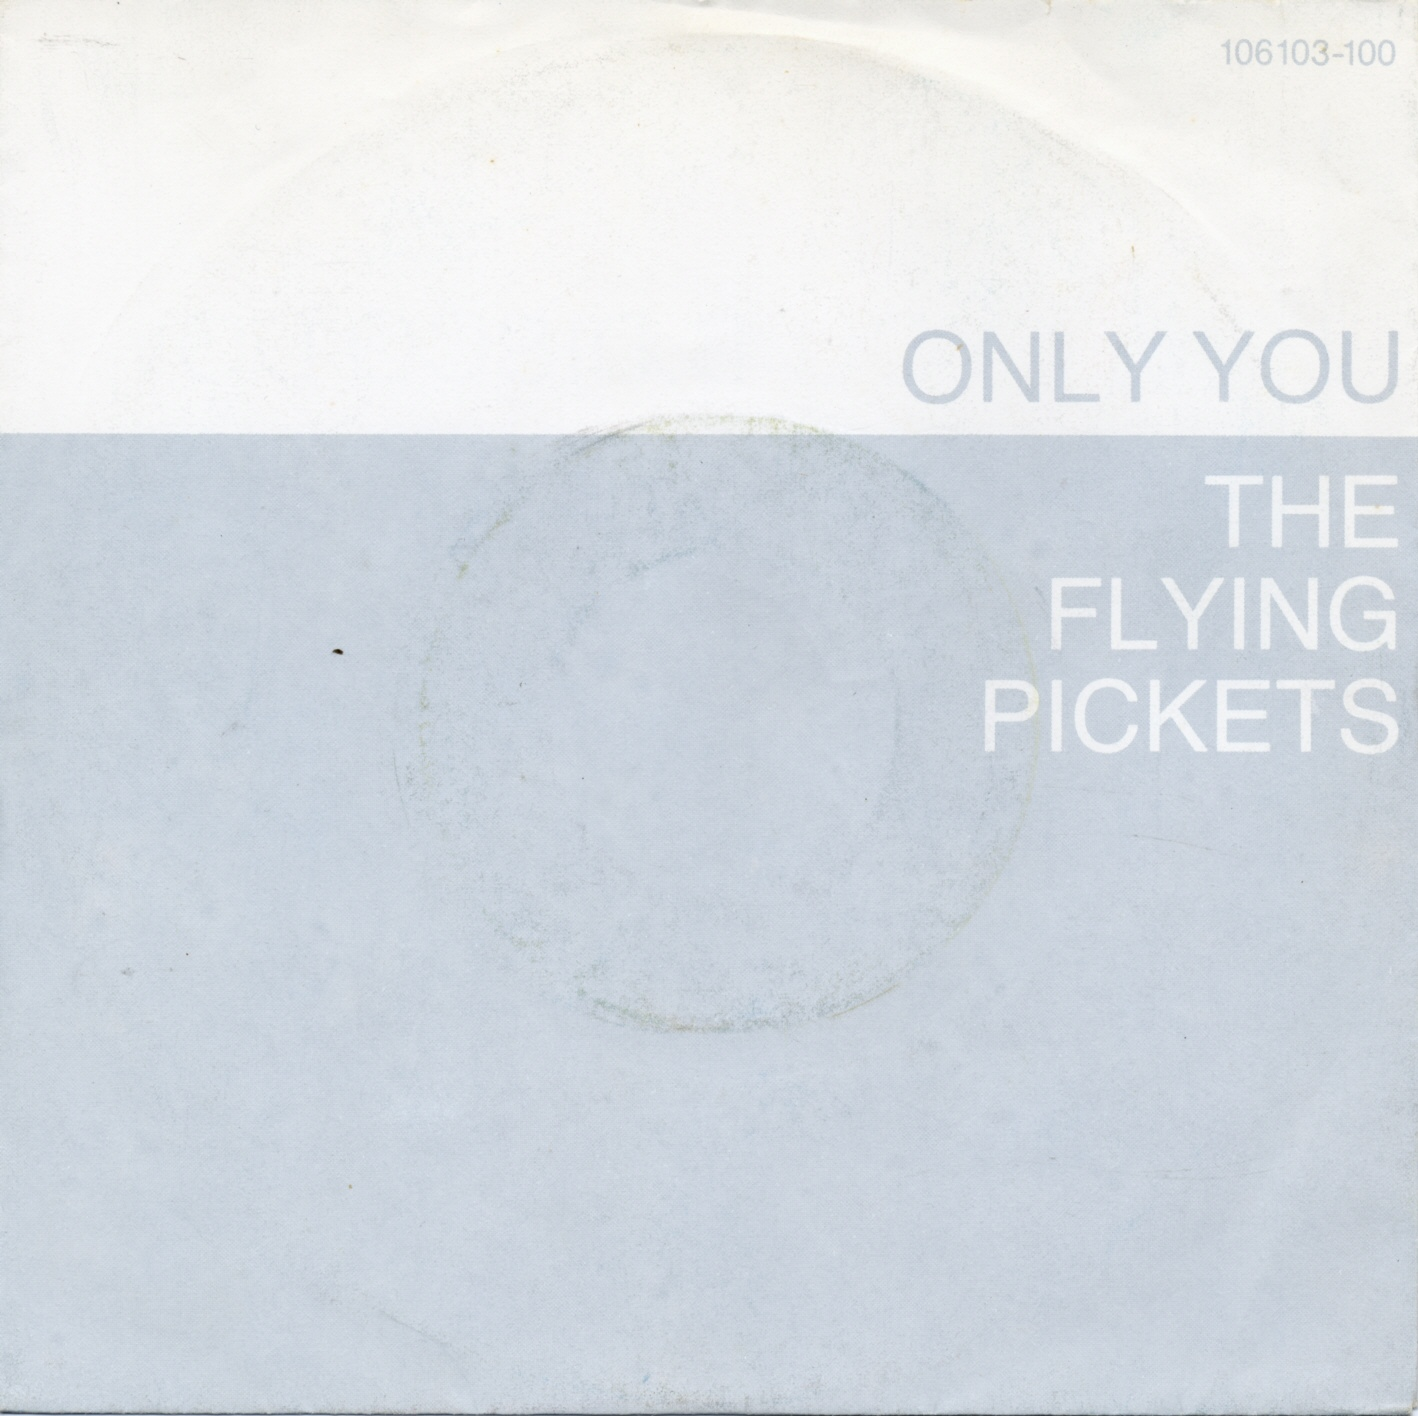 Cover: Only you, The Flying Pickets